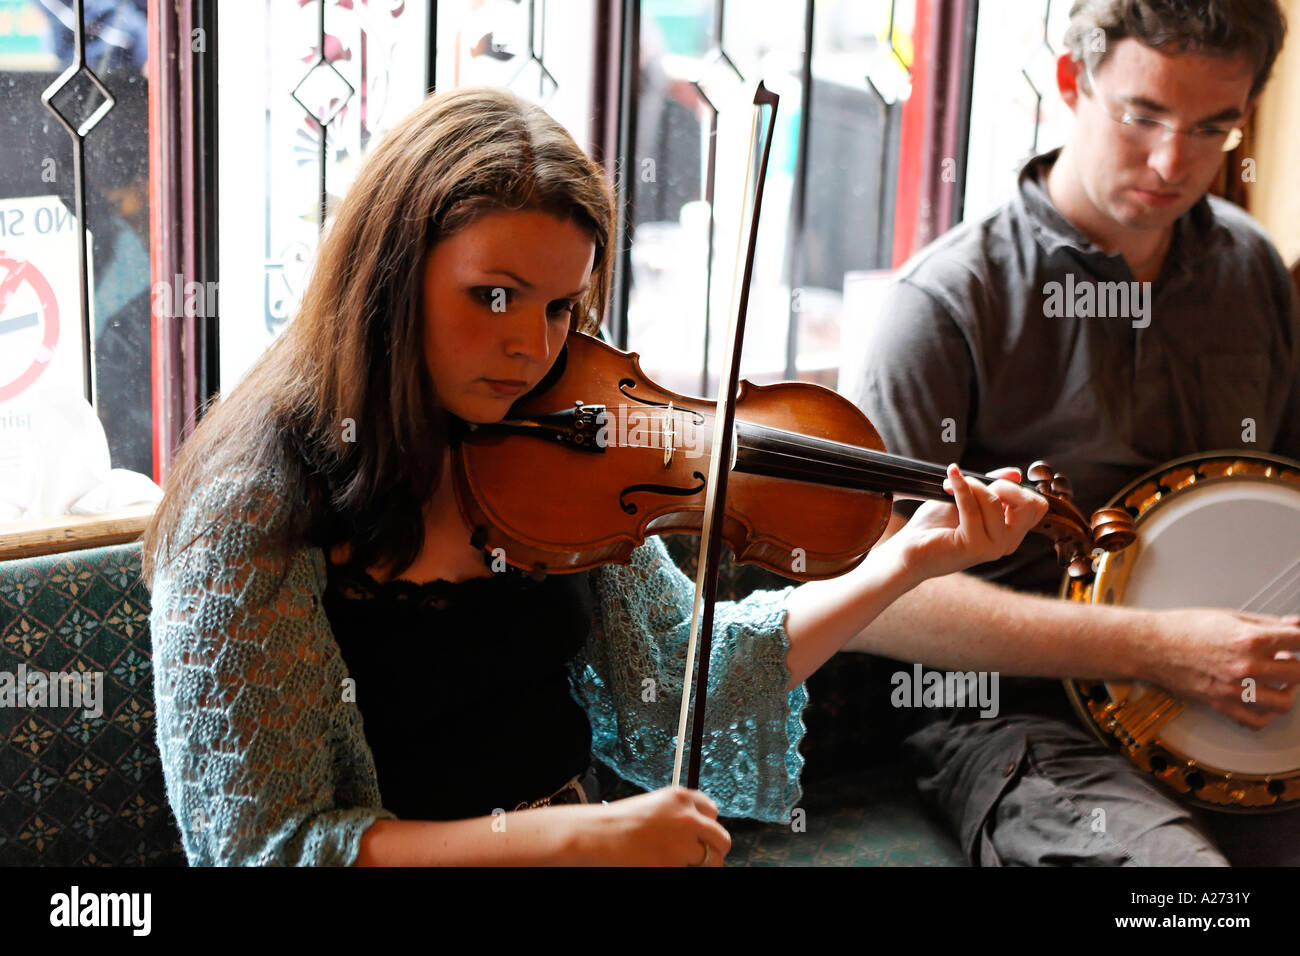 Live music sessions are a fixed part in the irish pub culture, Galway, Galway, Ireland - Stock Image